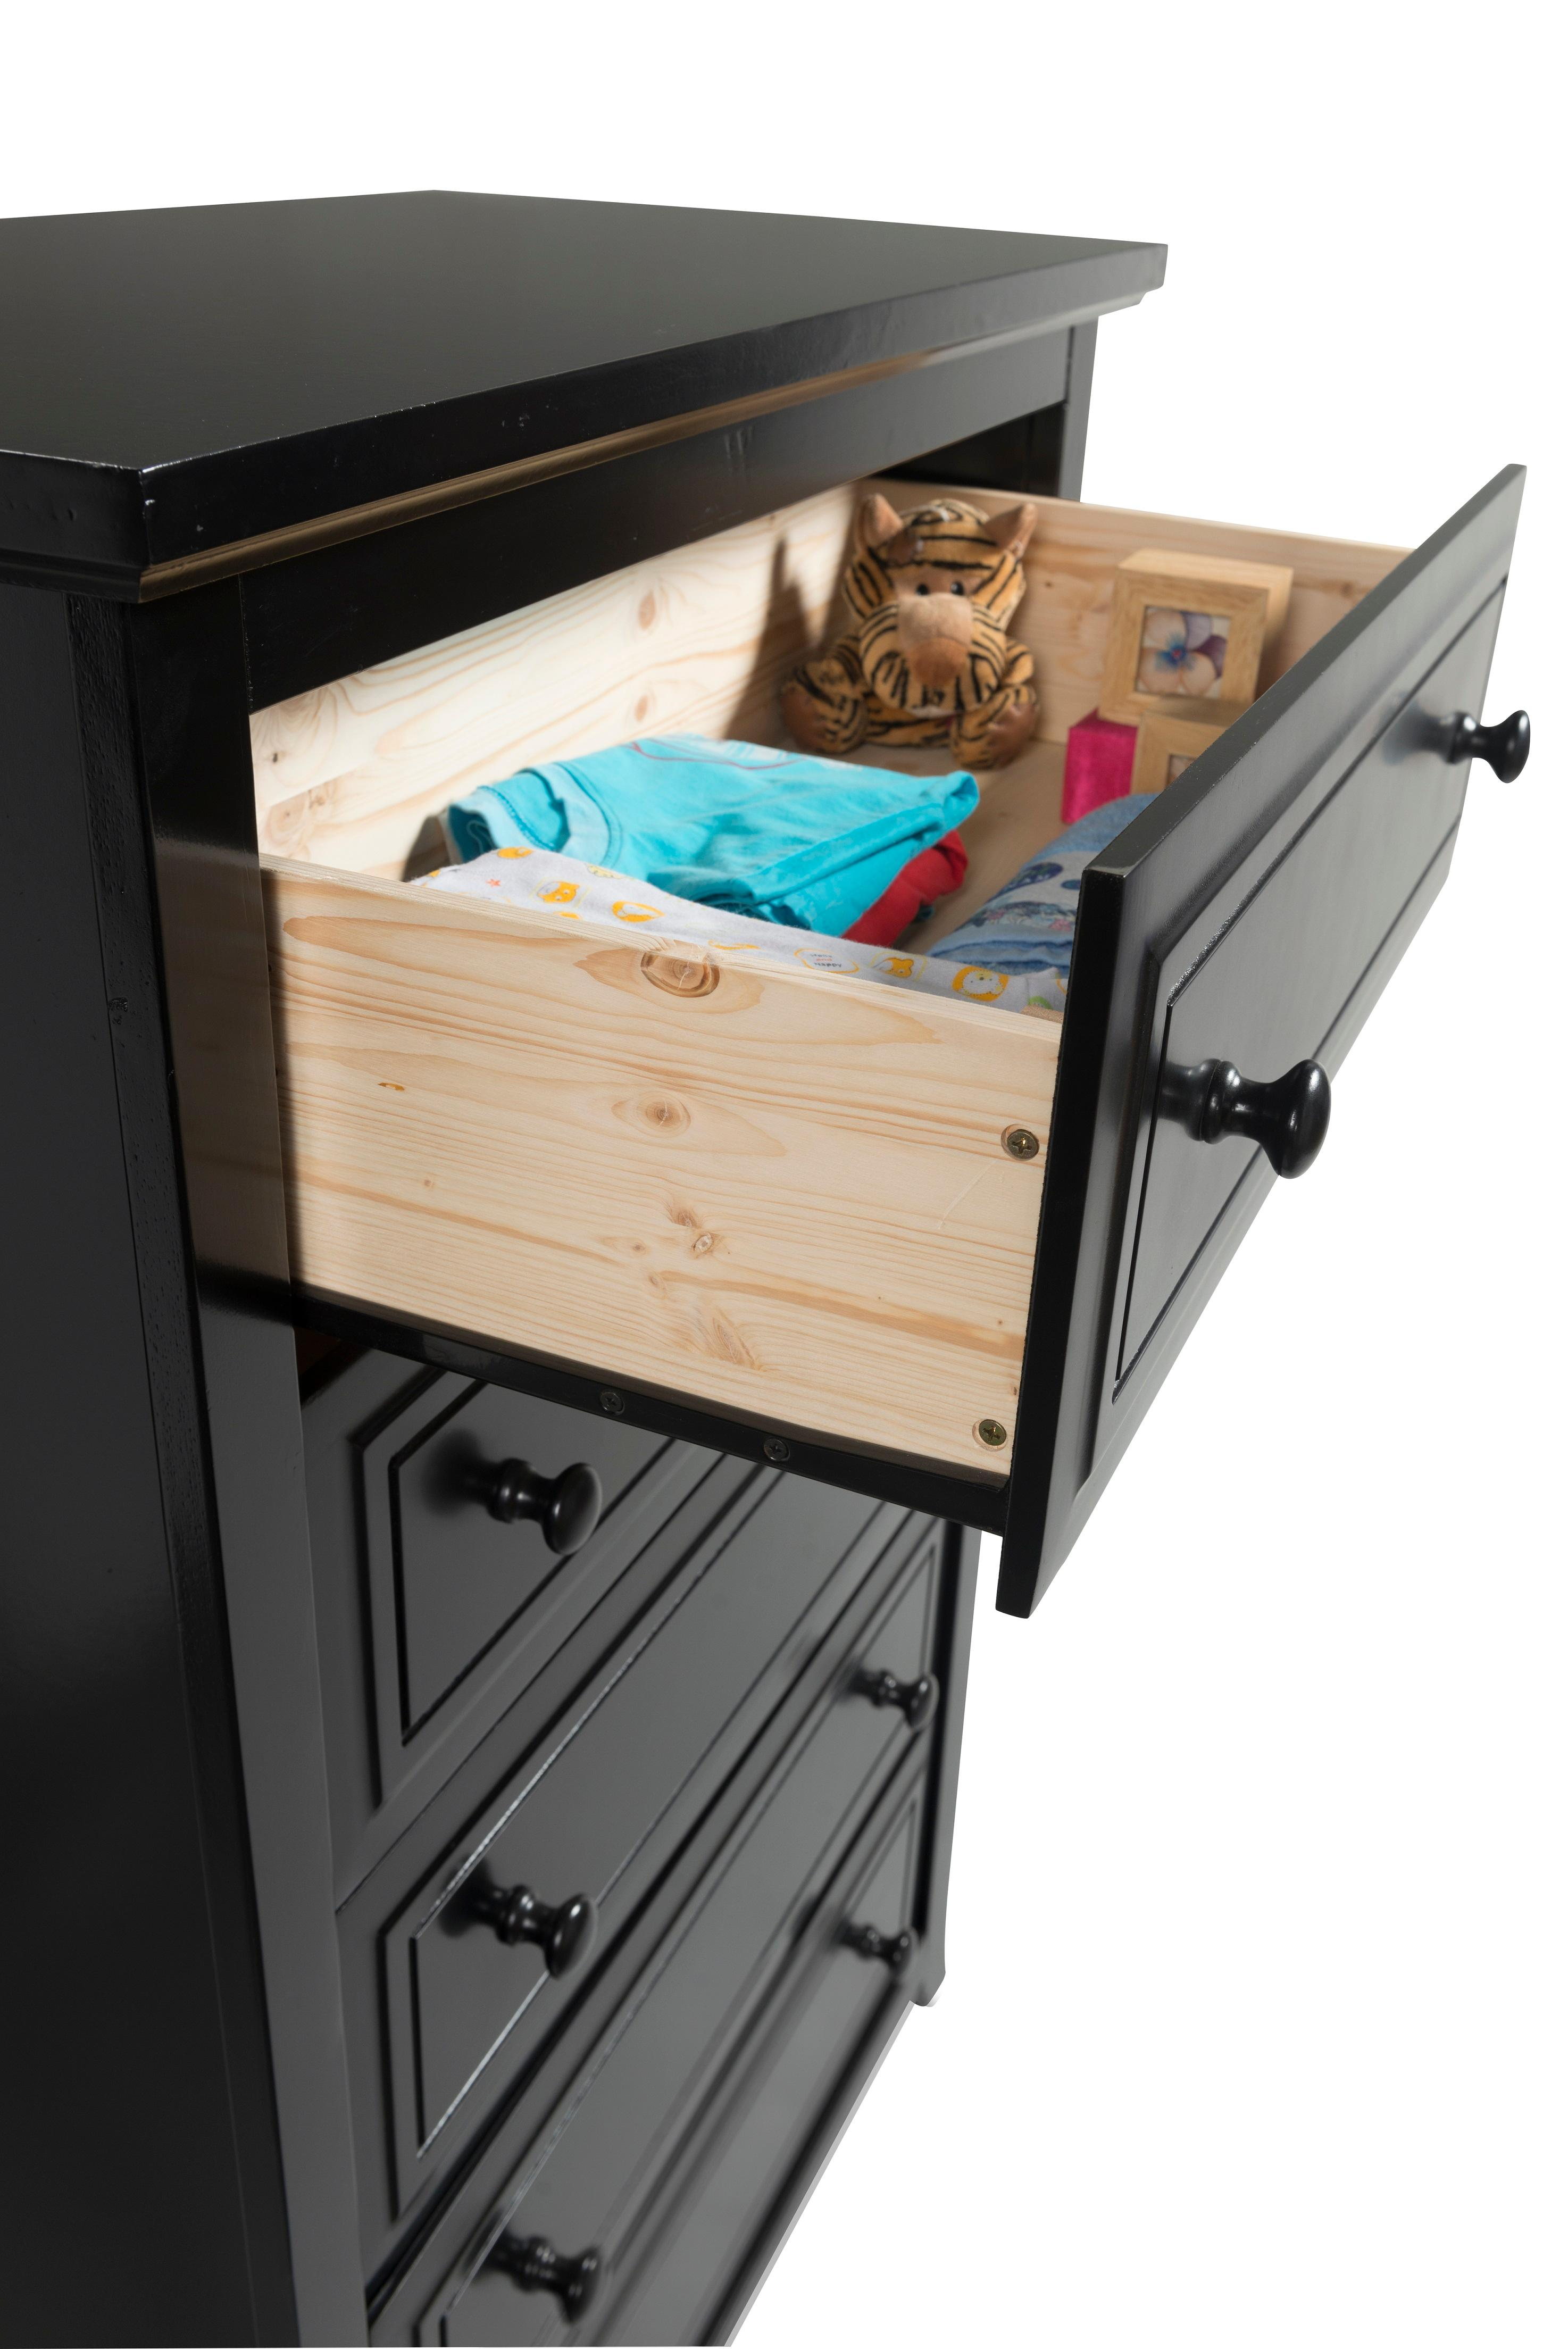 Amazon.com: Graco Kendall 5 Drawer Chest, Black, Kids